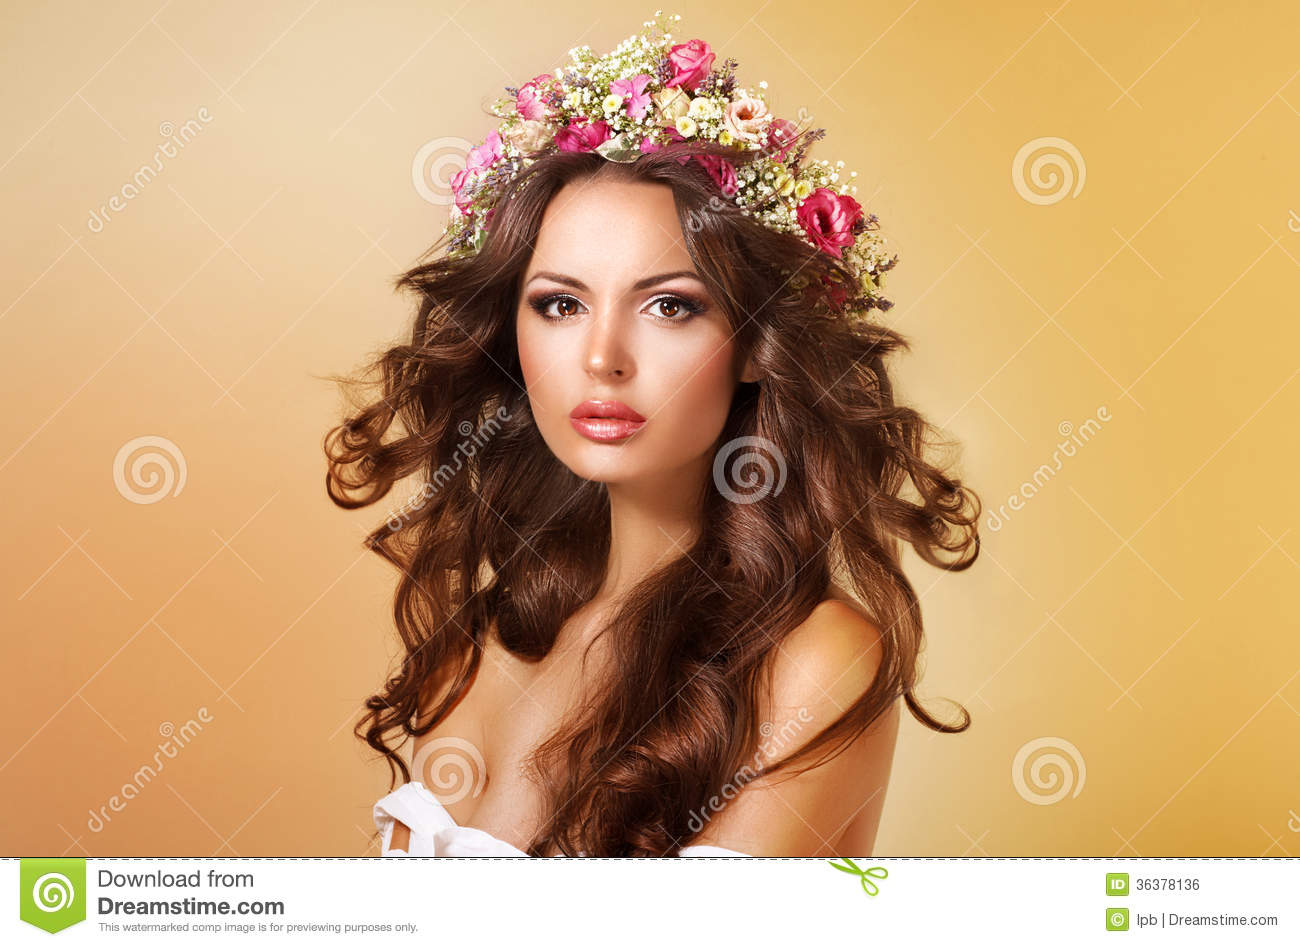 Royalty free stock image elegance classy adorable lady with flowers